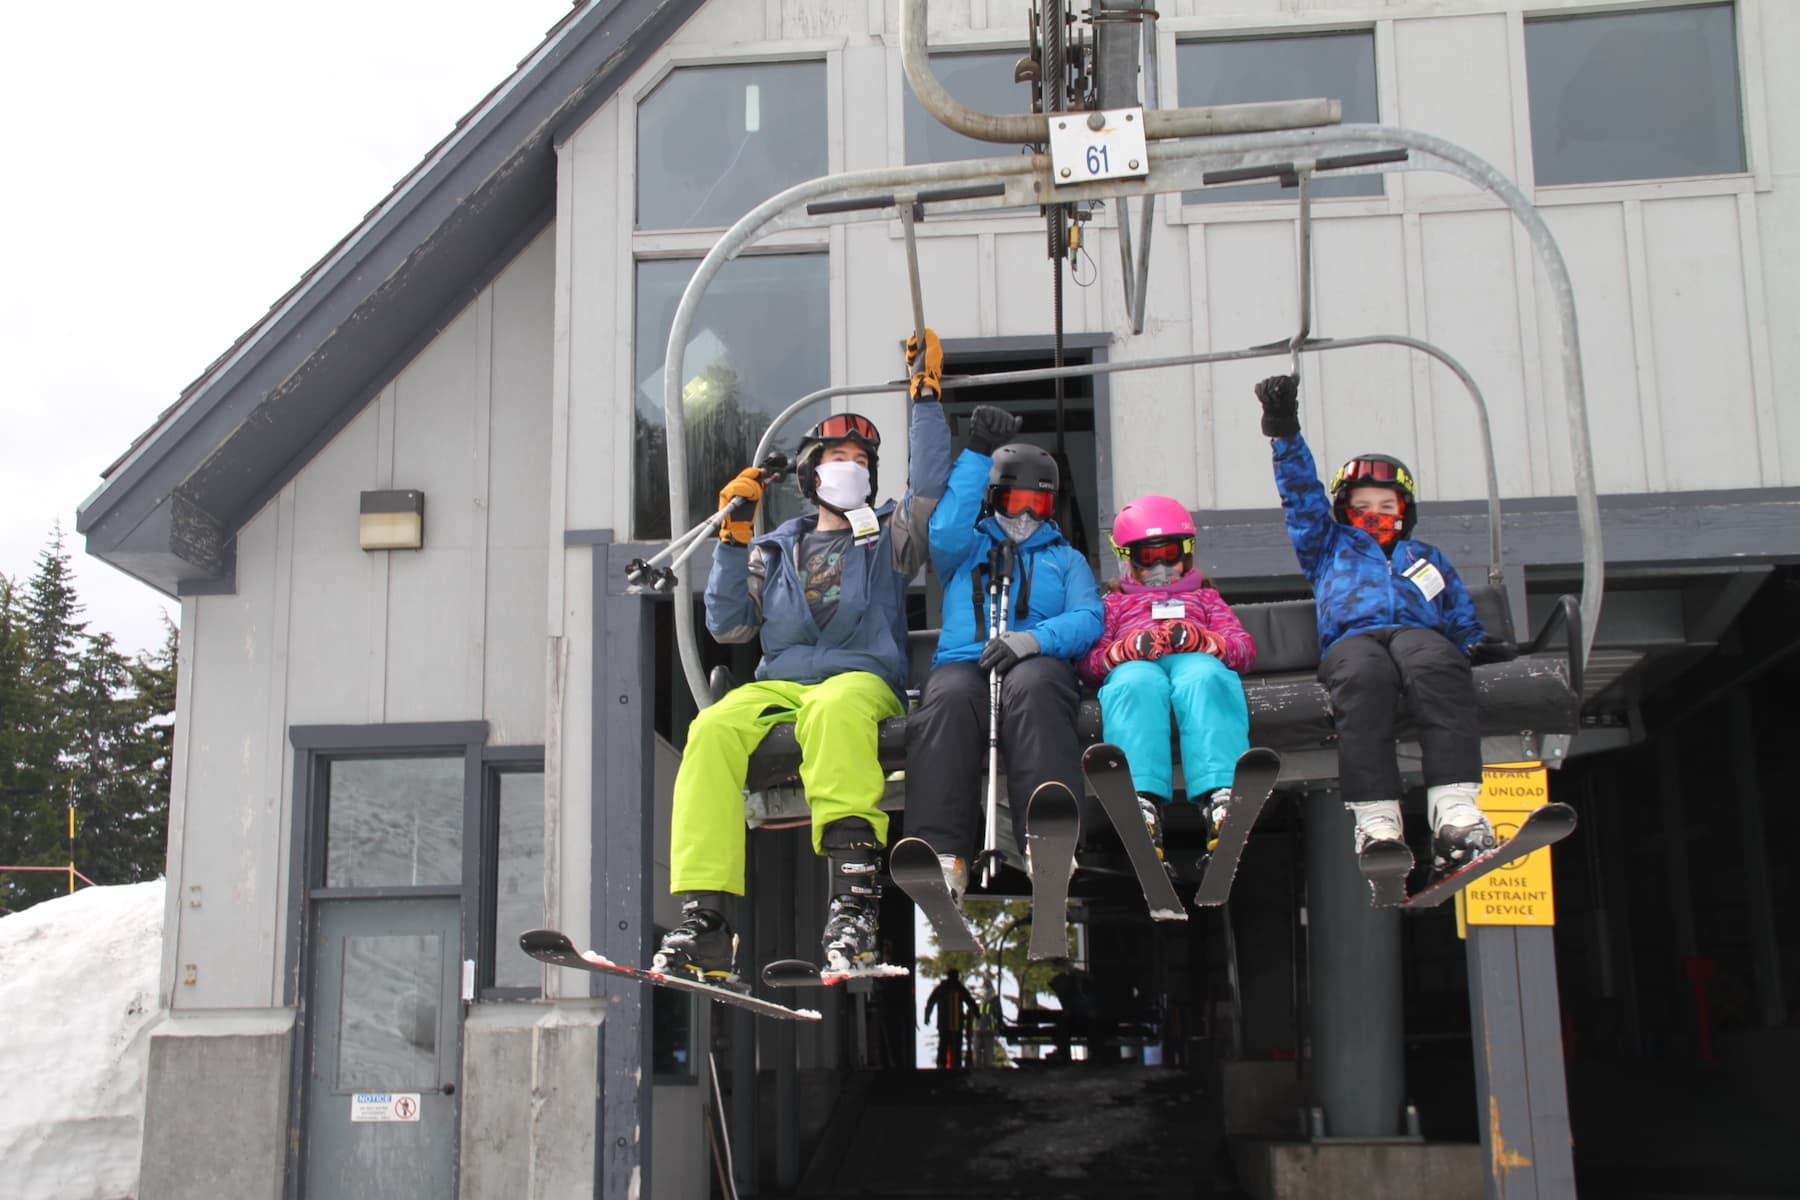 A family of four sits on a ski lift, geared up for the slopes and wearing face coverings.